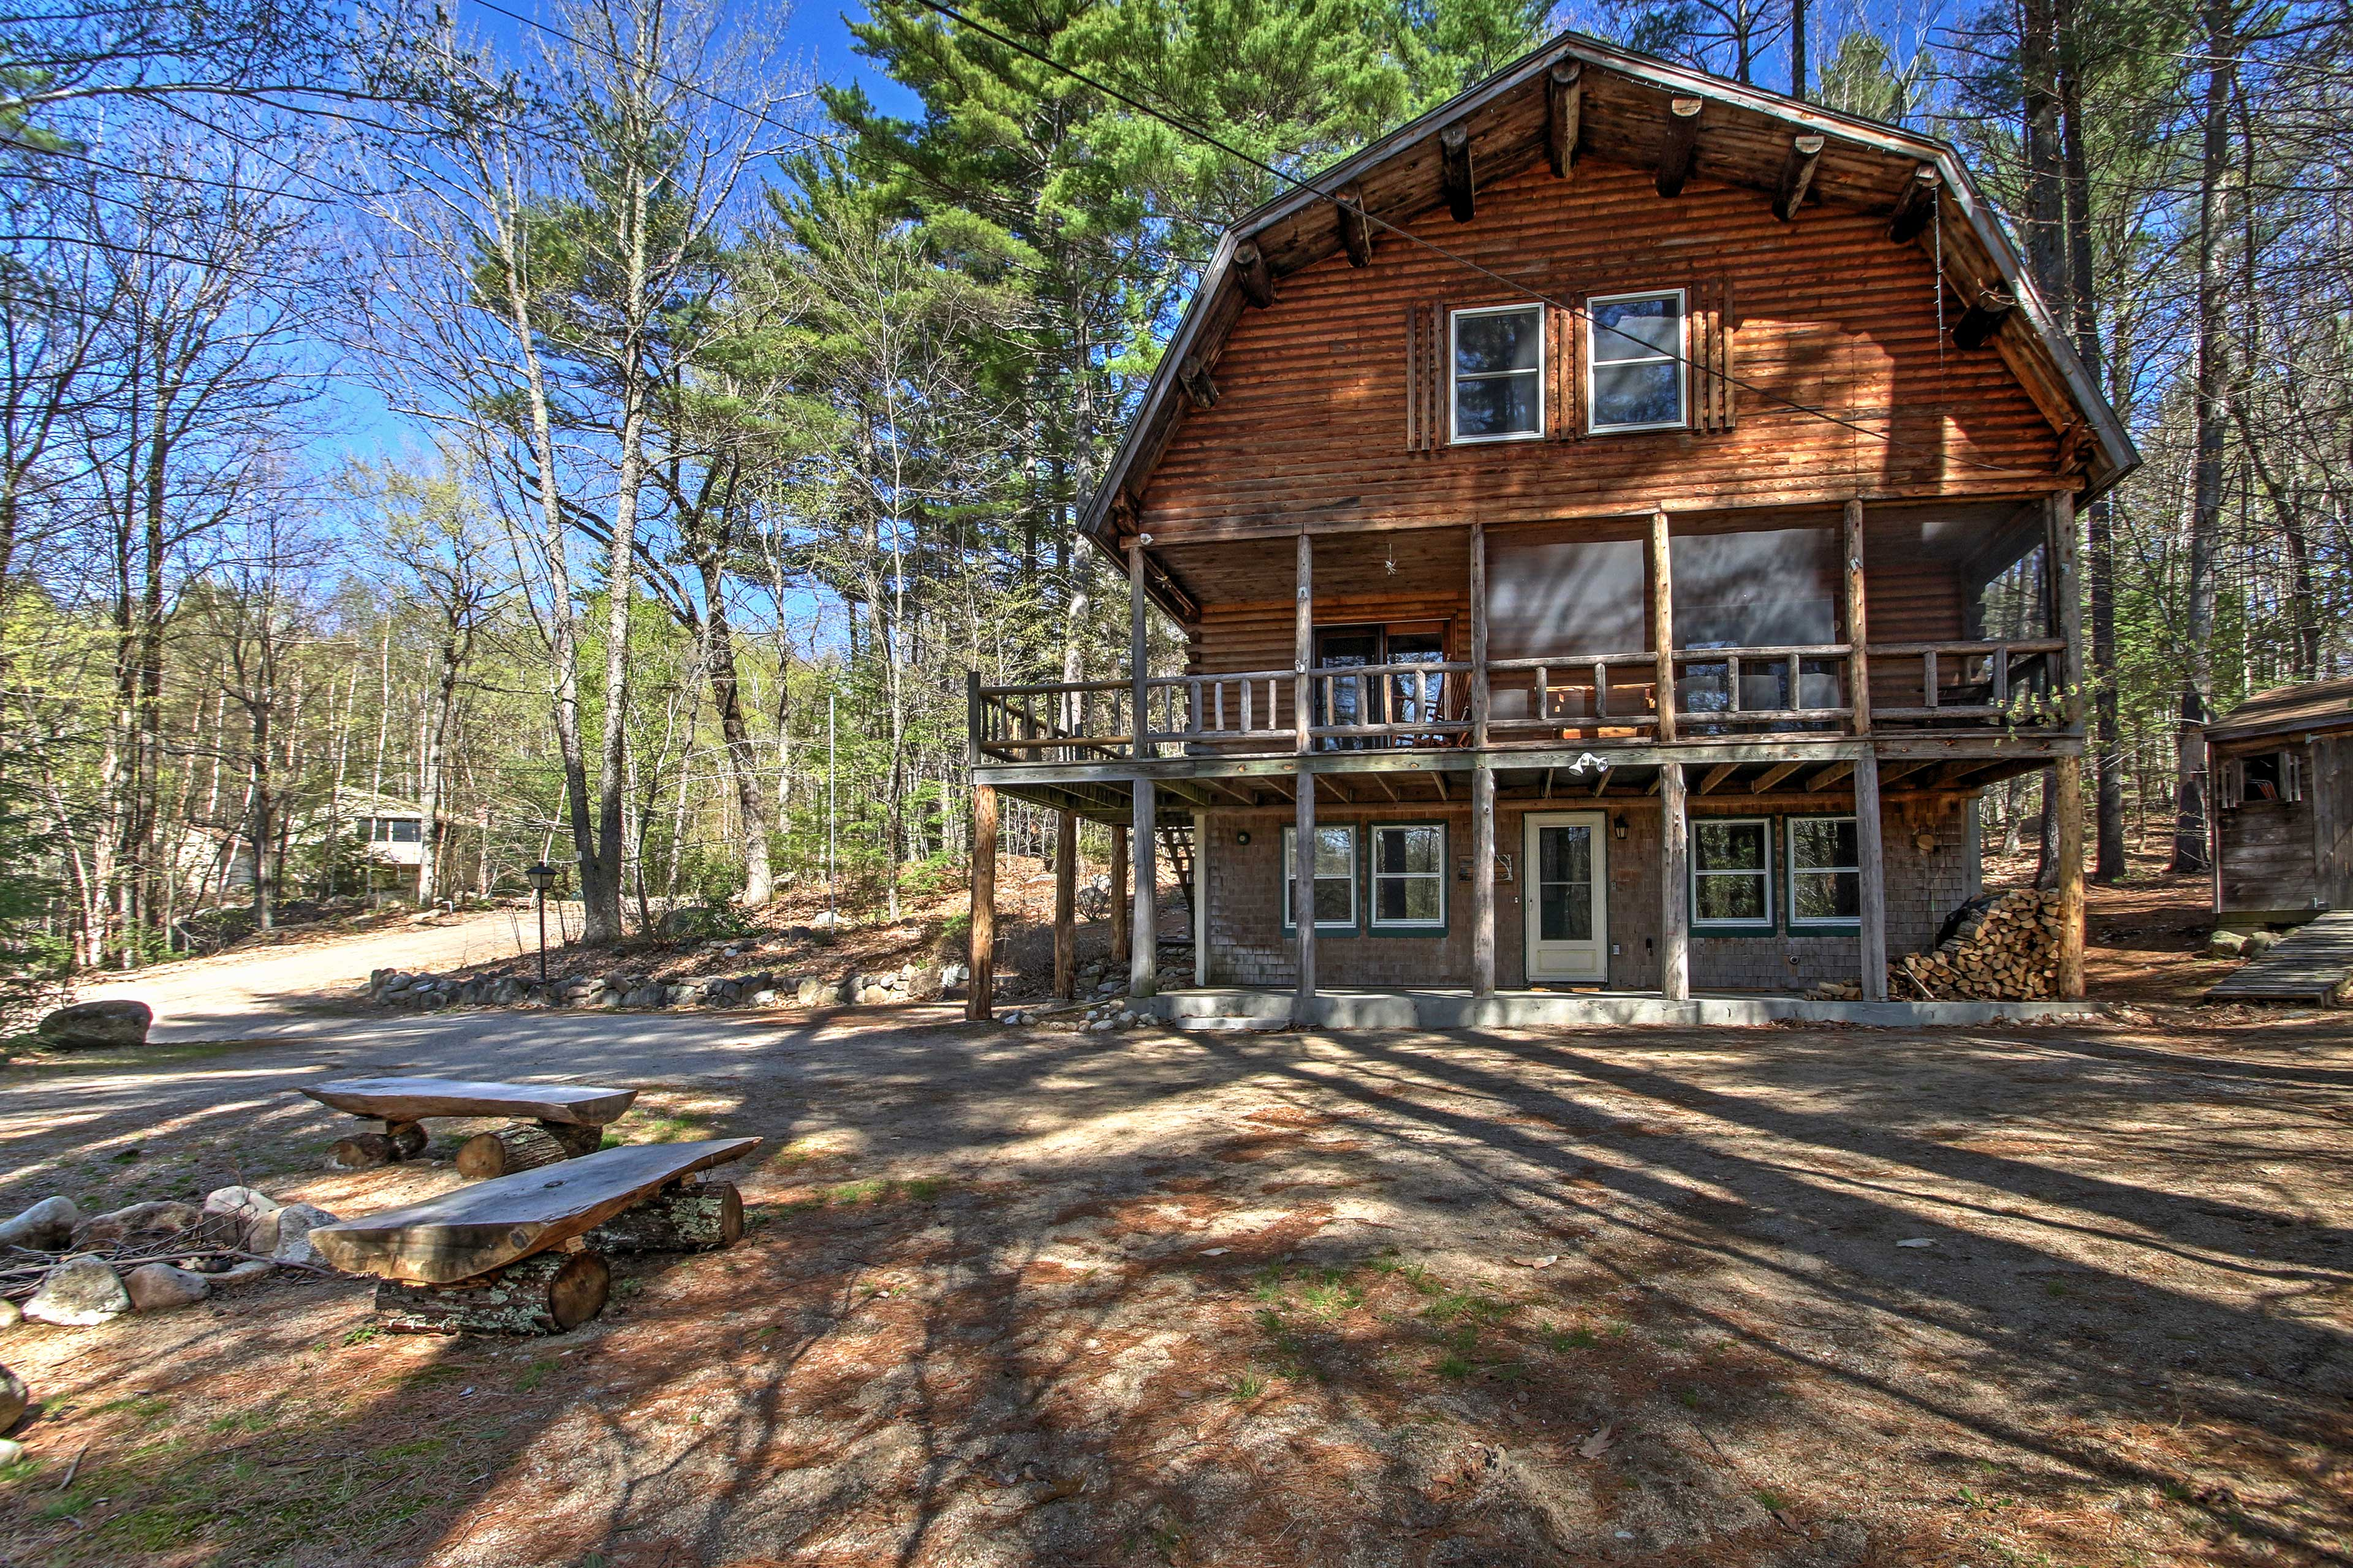 This updated vacation rental cabin will surround you with nature's splendor.